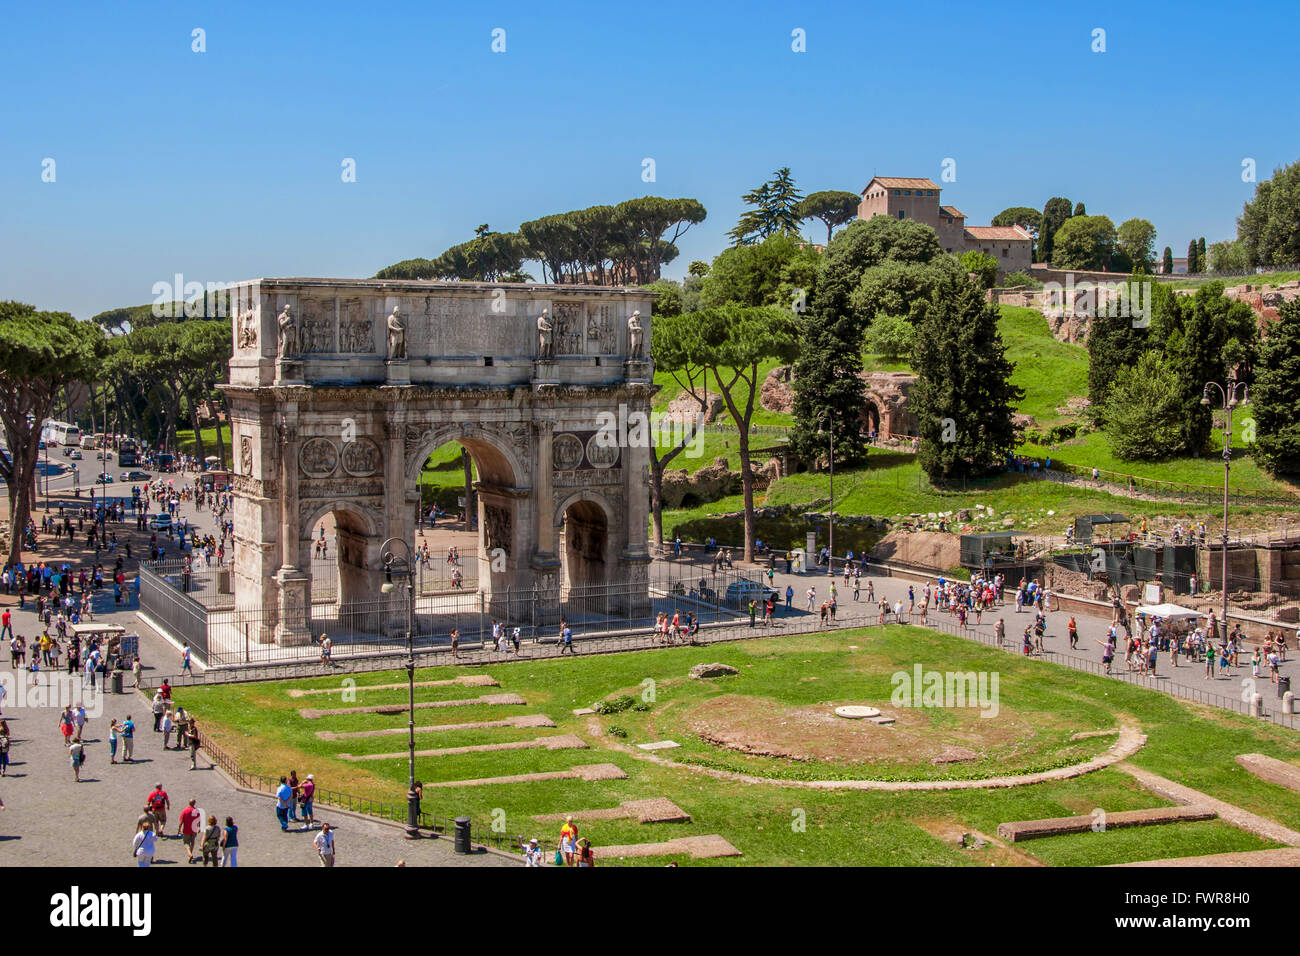 The triumphal arch of Constantine in Rome - Stock Image